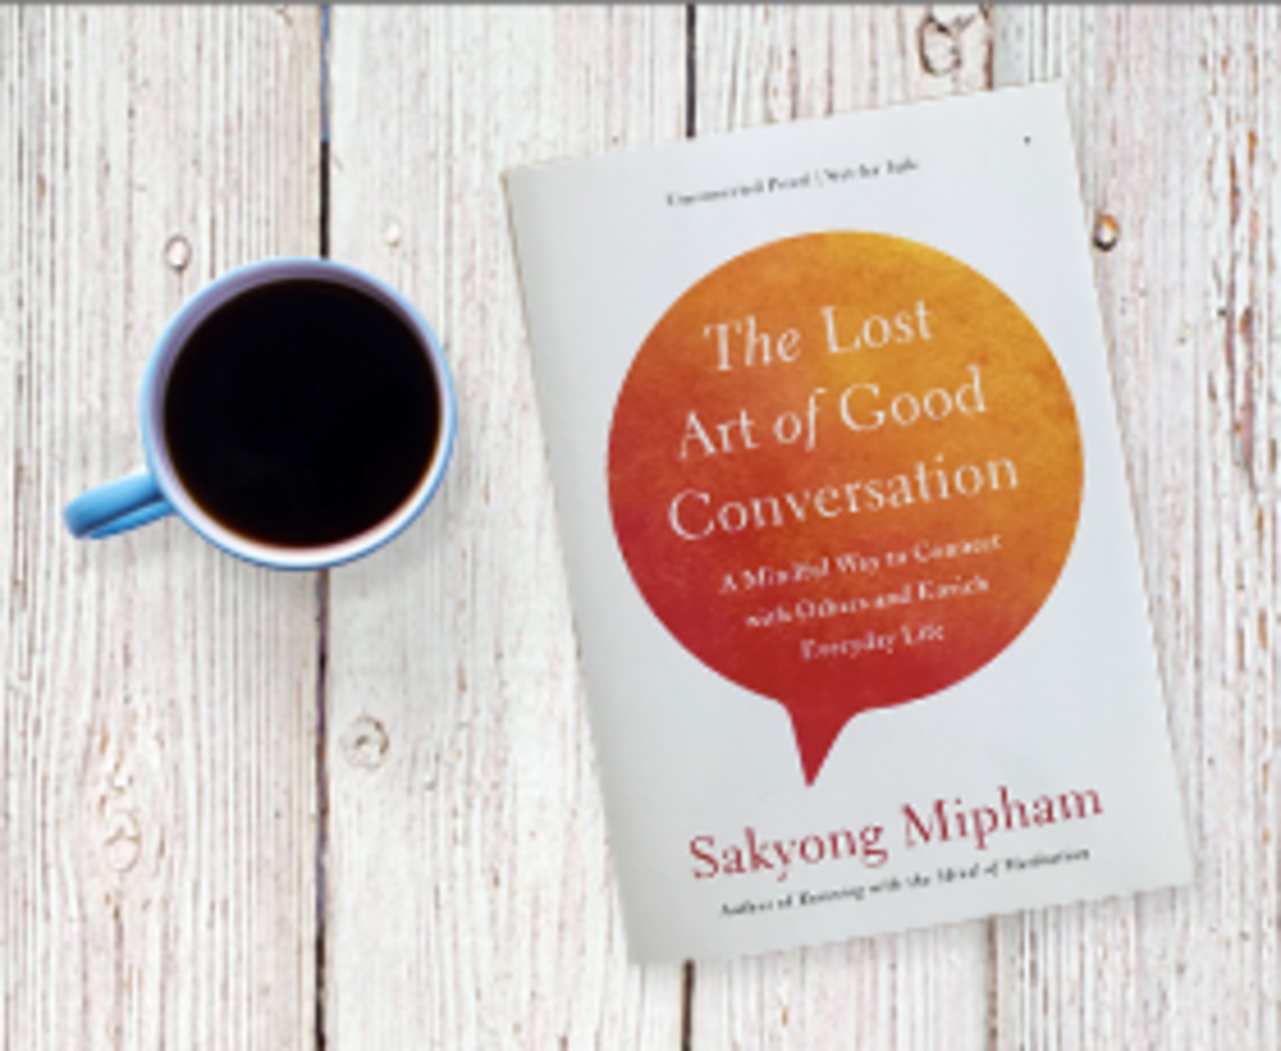 The art of good conversation